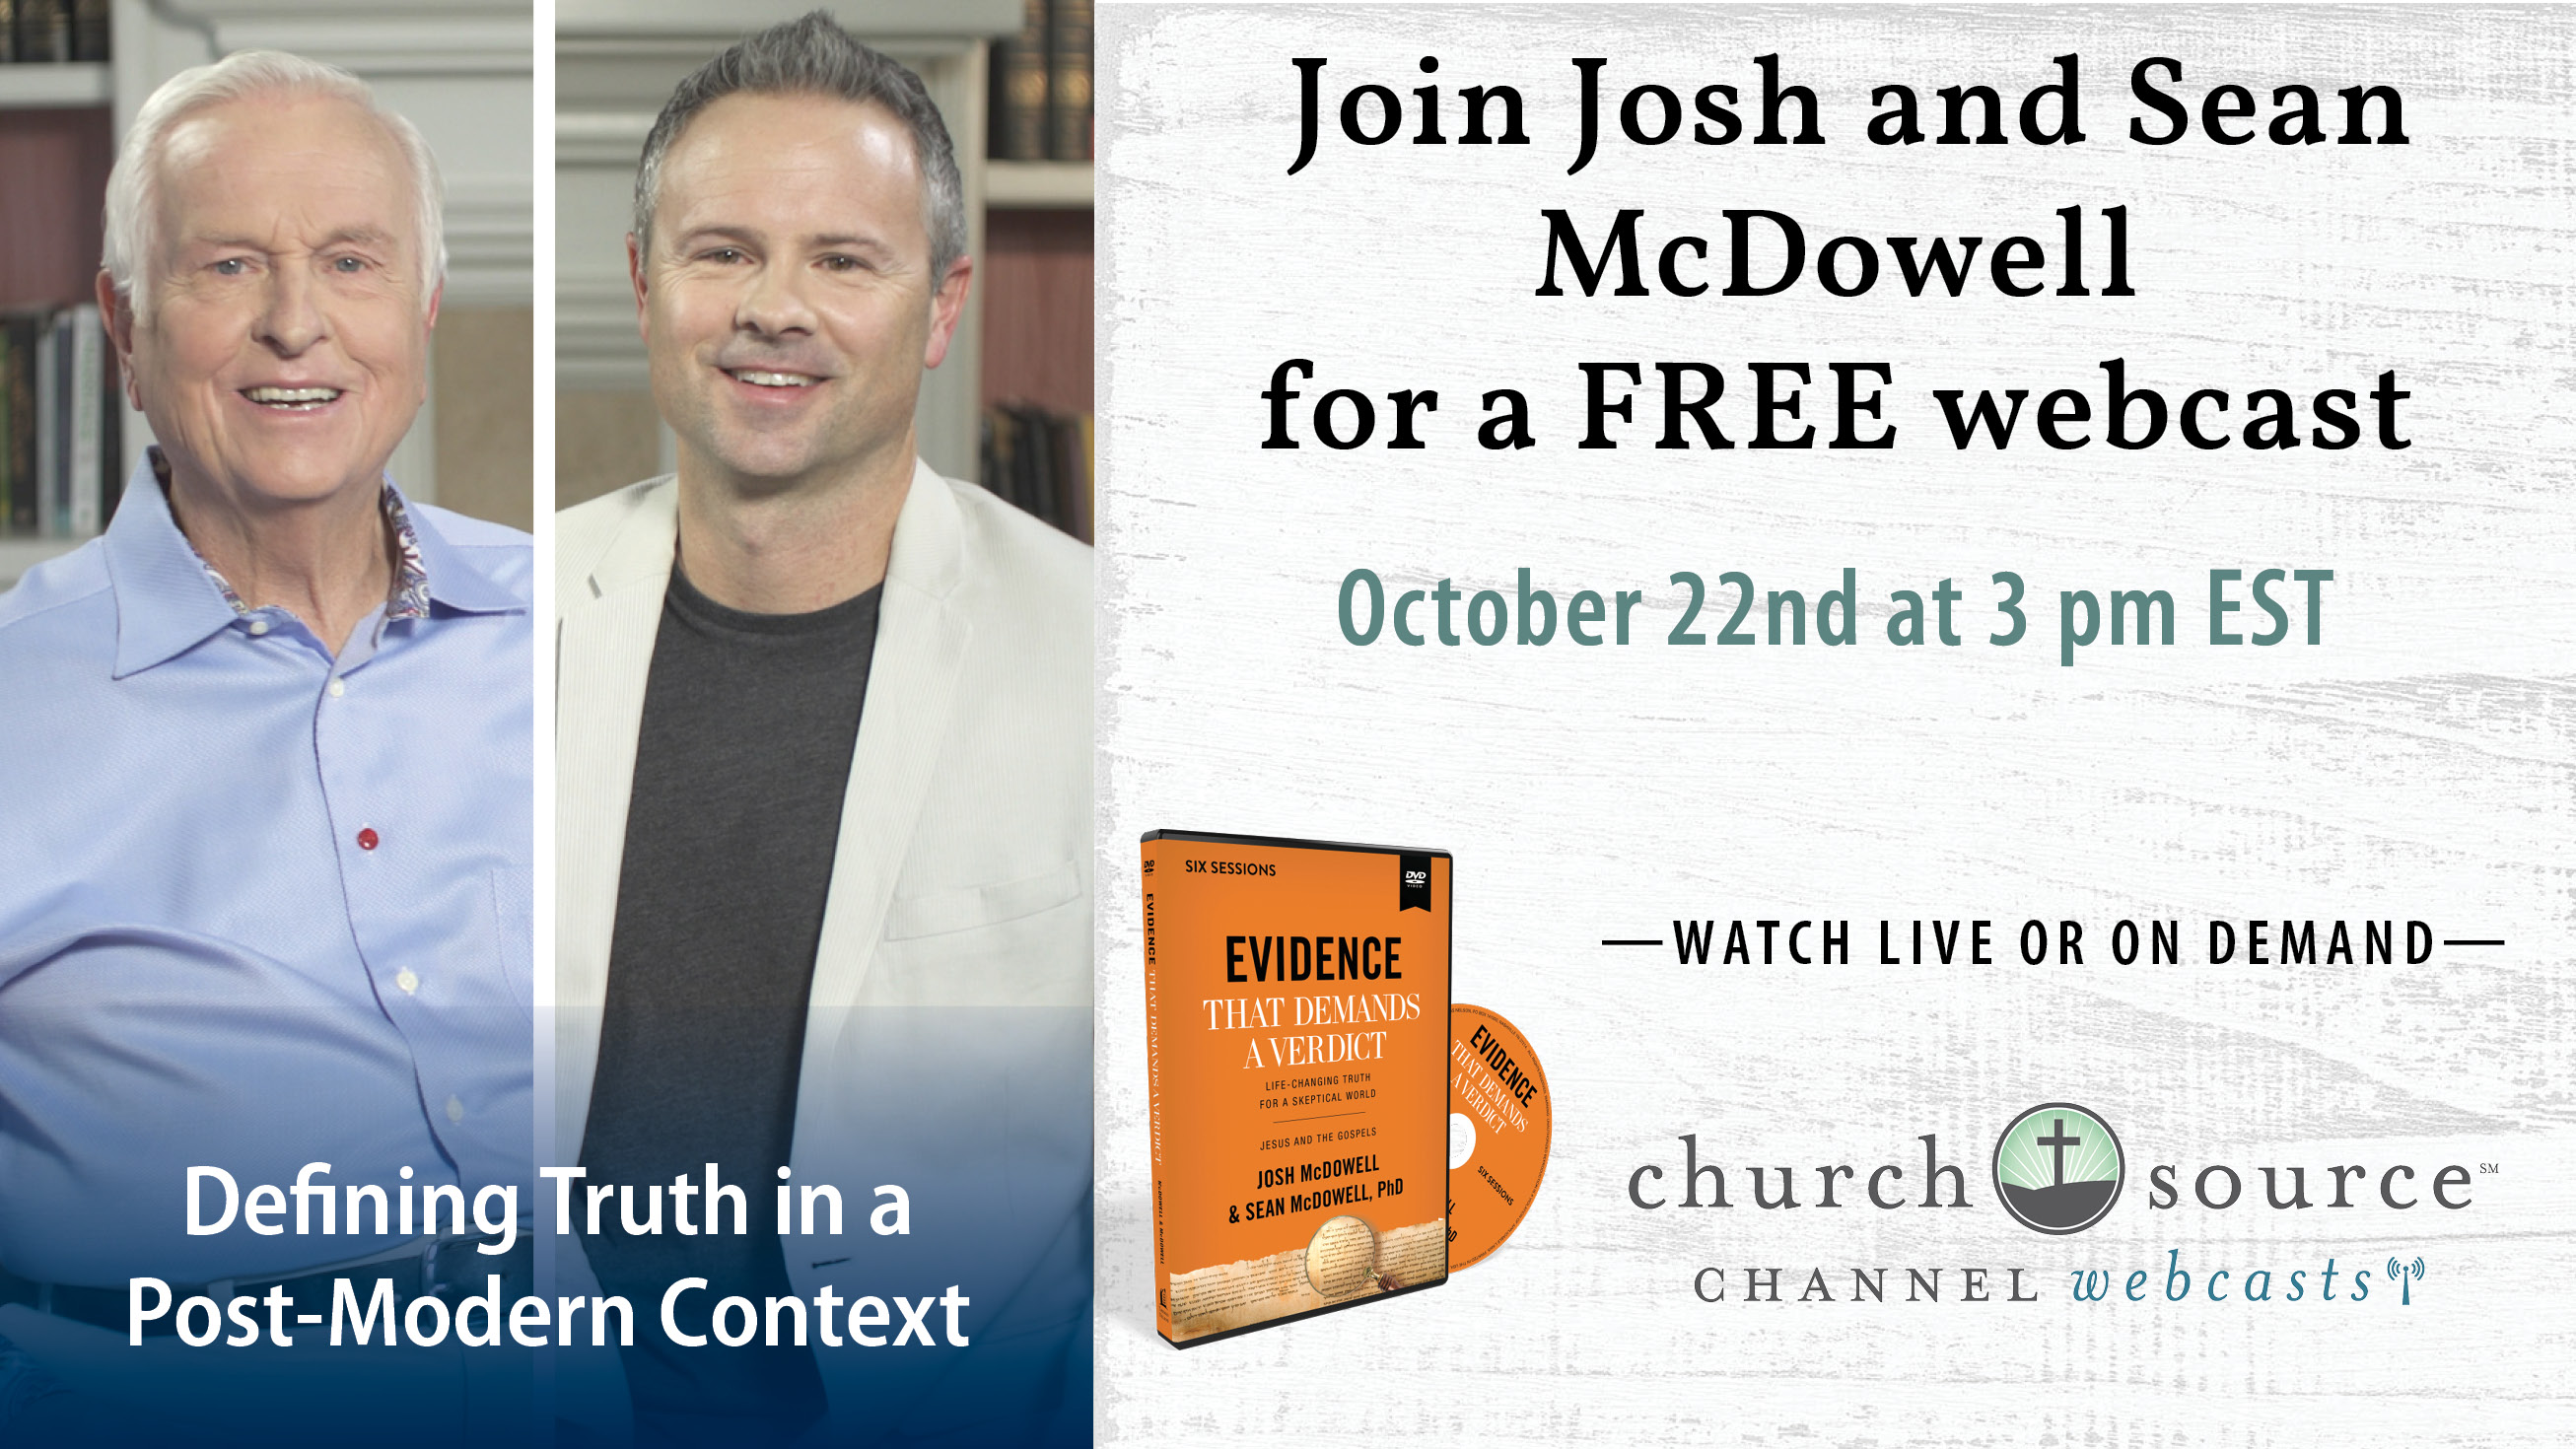 Defining Truth in a Post-Modern Context - Webcast with Josh and Sean McDowell